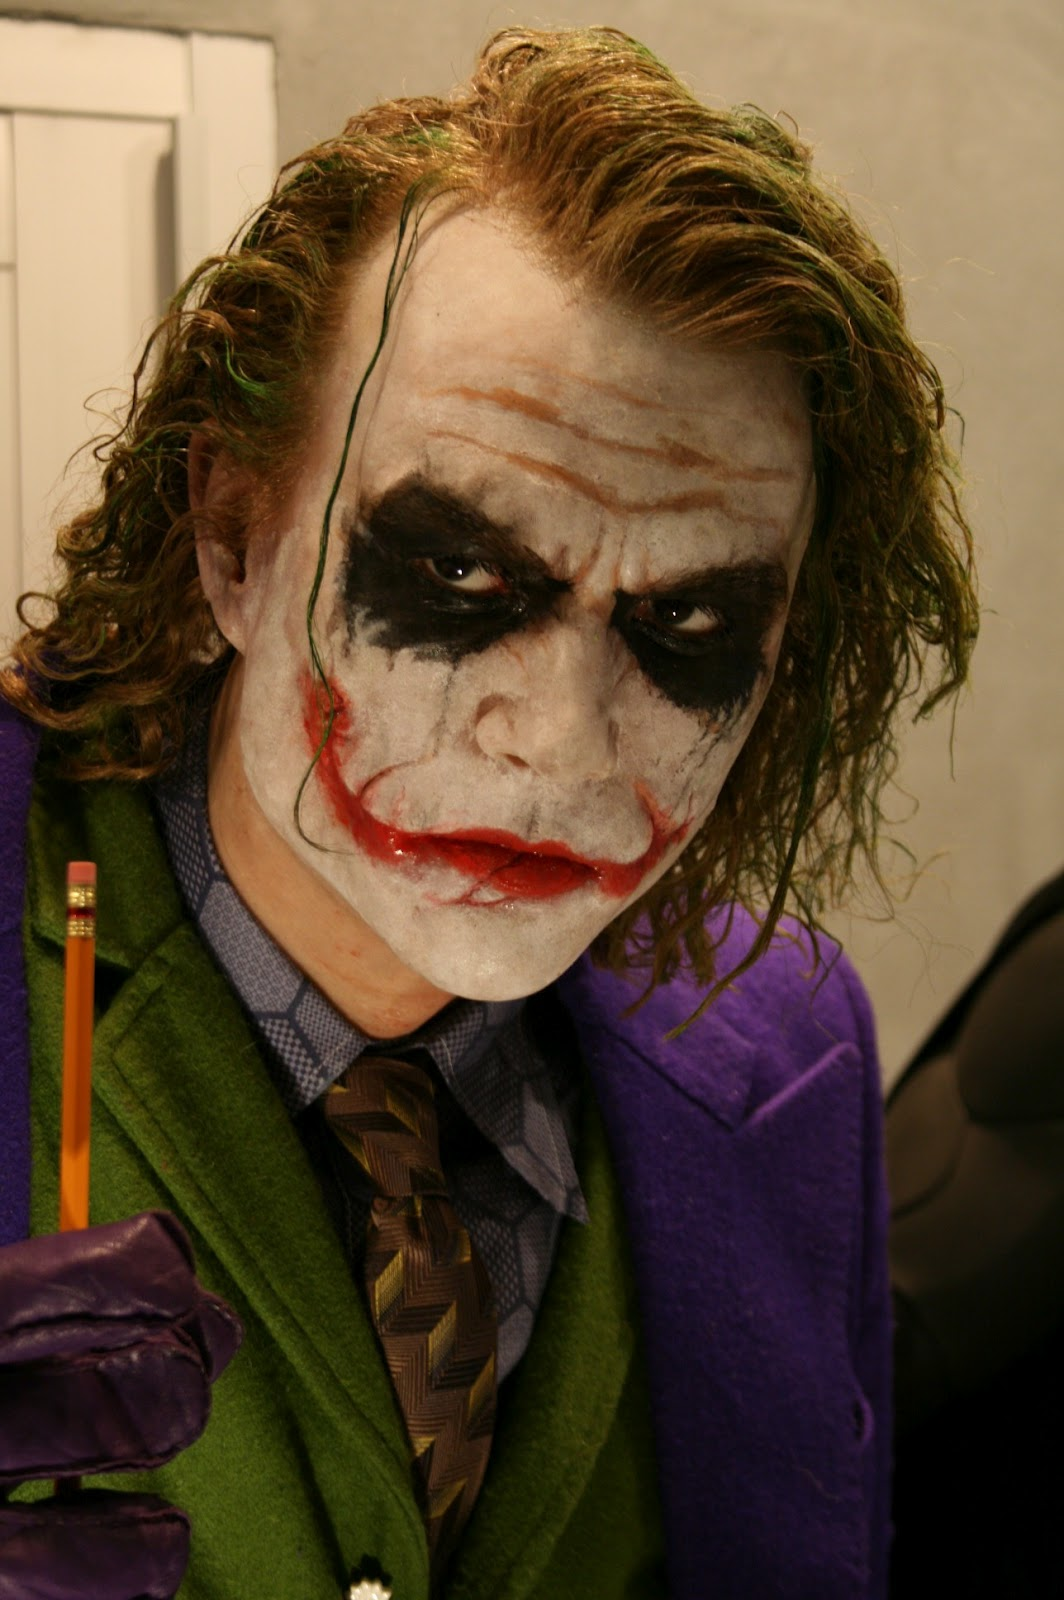 http://1.bp.blogspot.com/-os1KDpfD-H8/UDrerkyni-I/AAAAAAAAEdQ/j5ZEquVj_oo/s1600/HEATH_LEDGER_the_Joker_by_BobbyC1225.jpg